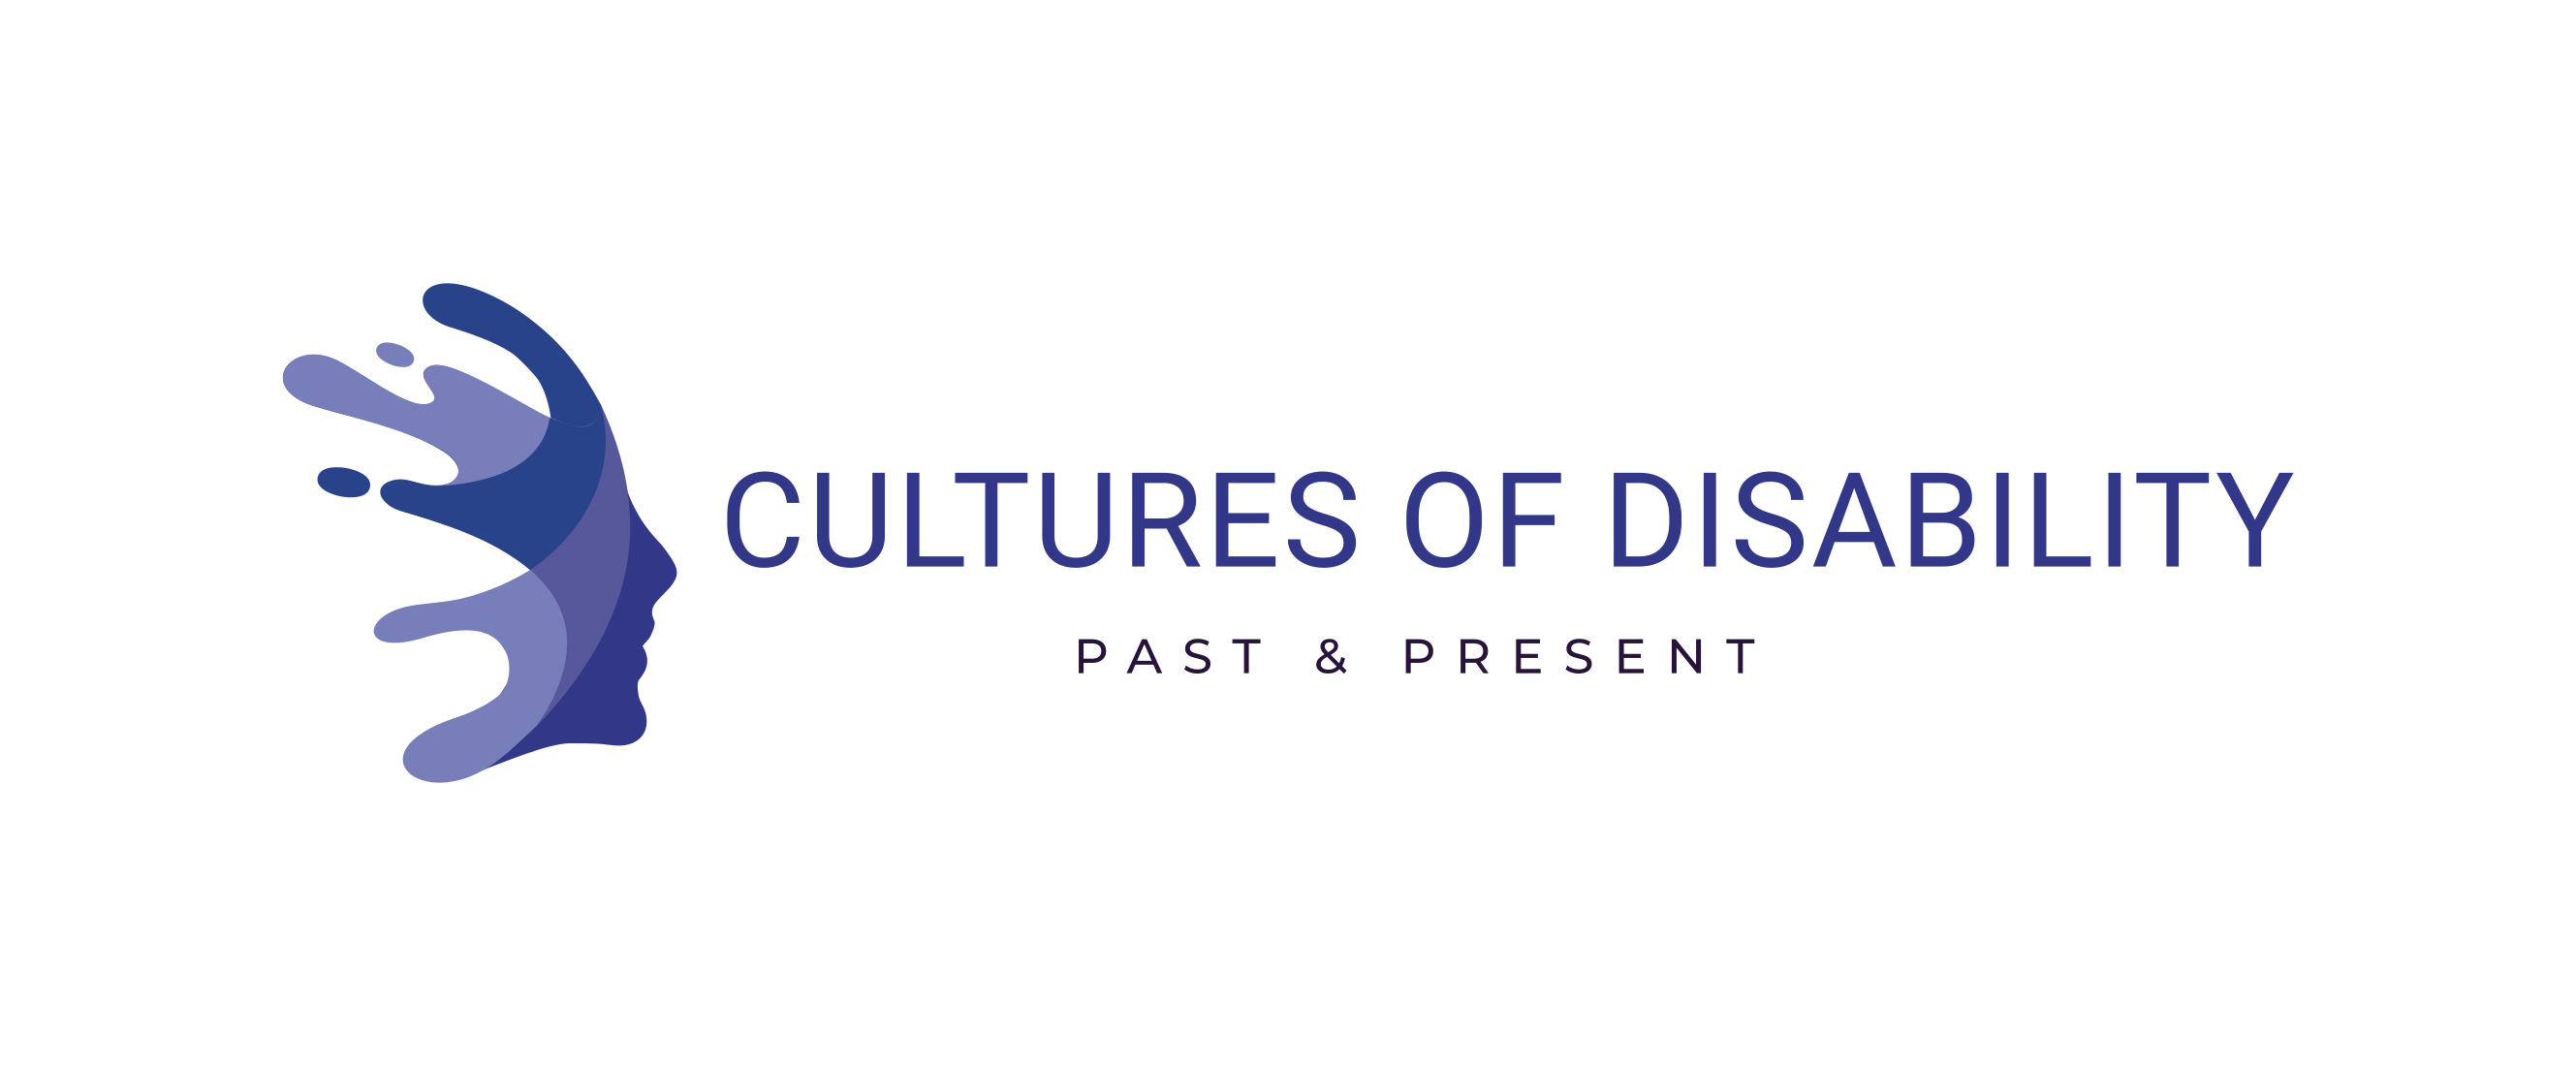 Cultures of Disability